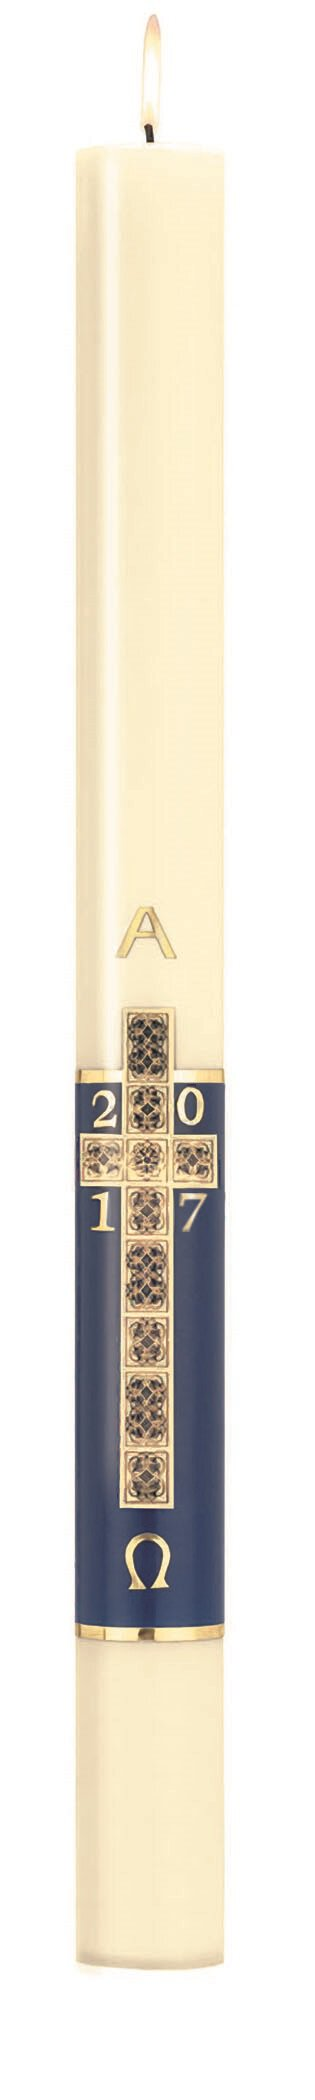 No 11 Holy Cross Paschal Candle